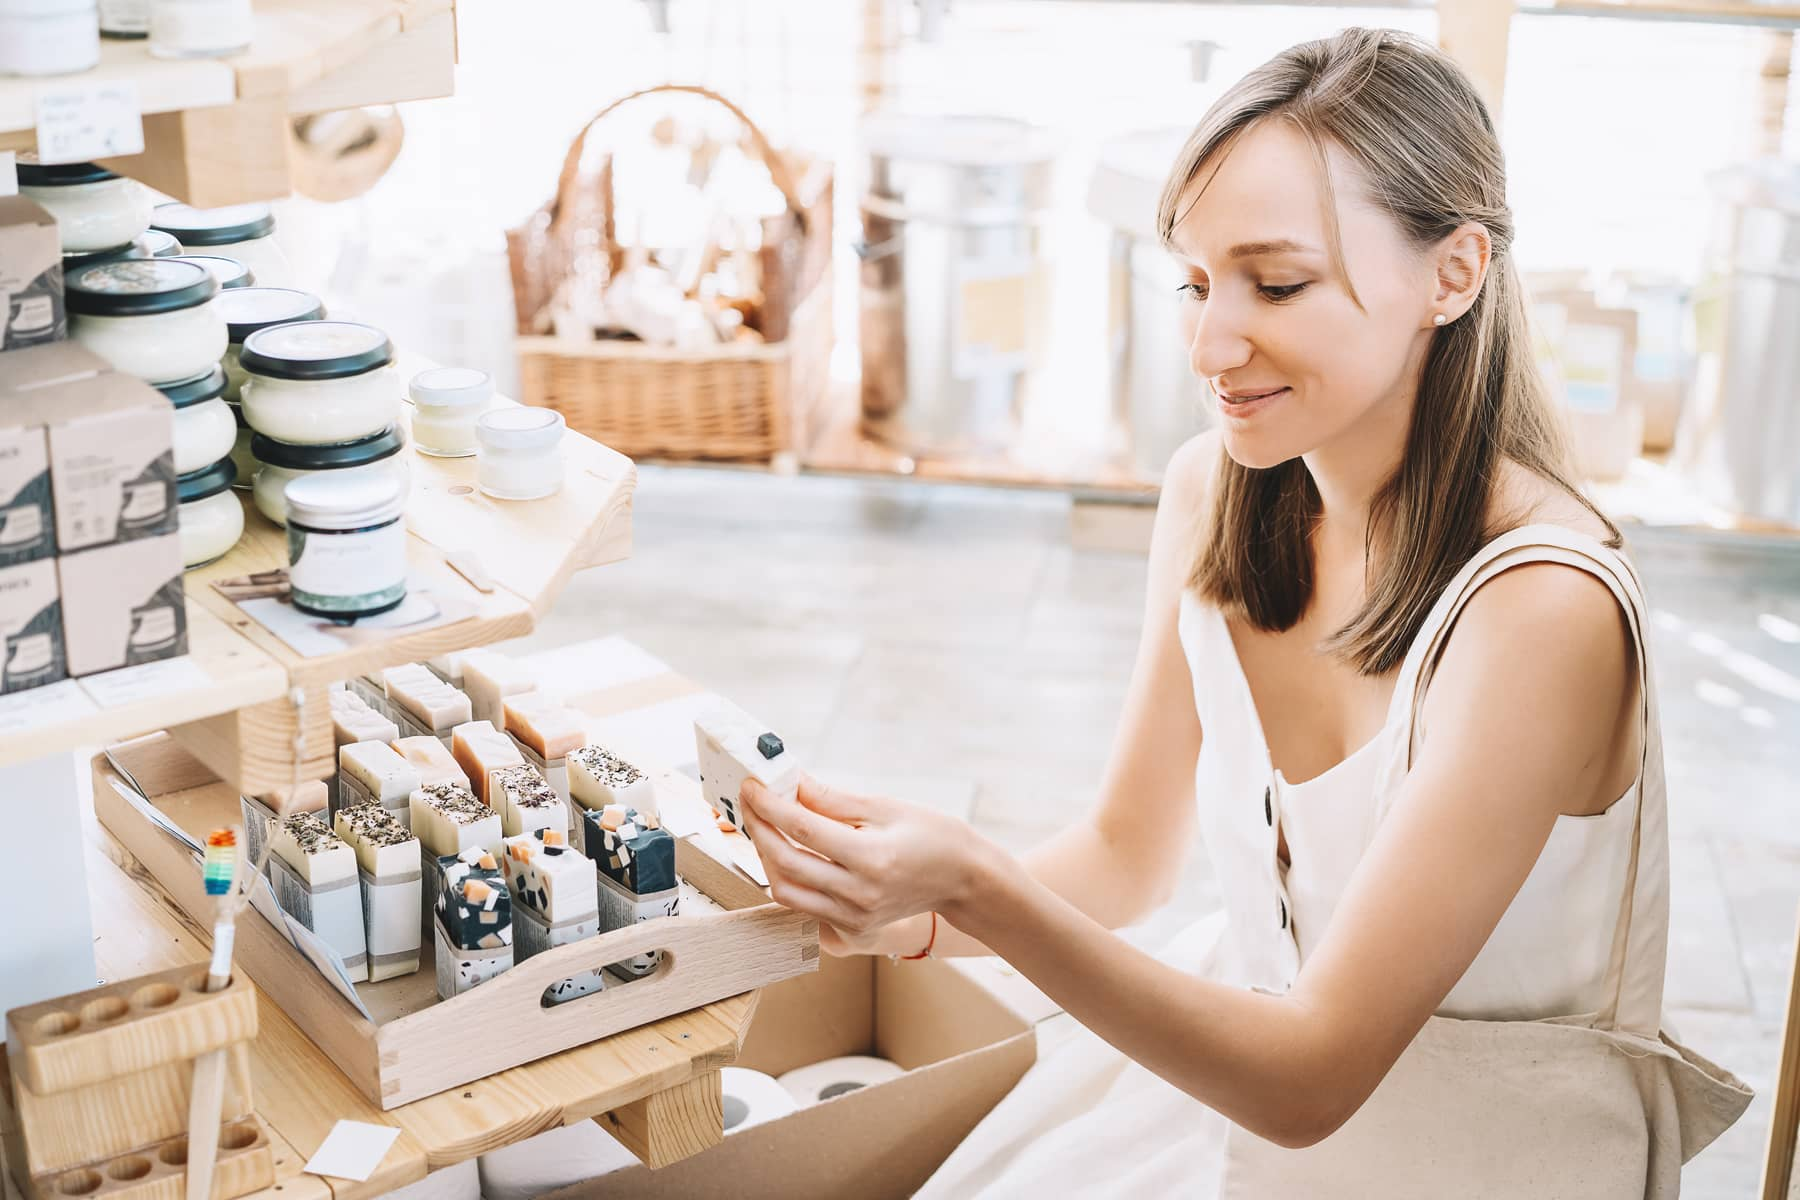 A young woman is browsing personal hygiene products in a small specialty store.